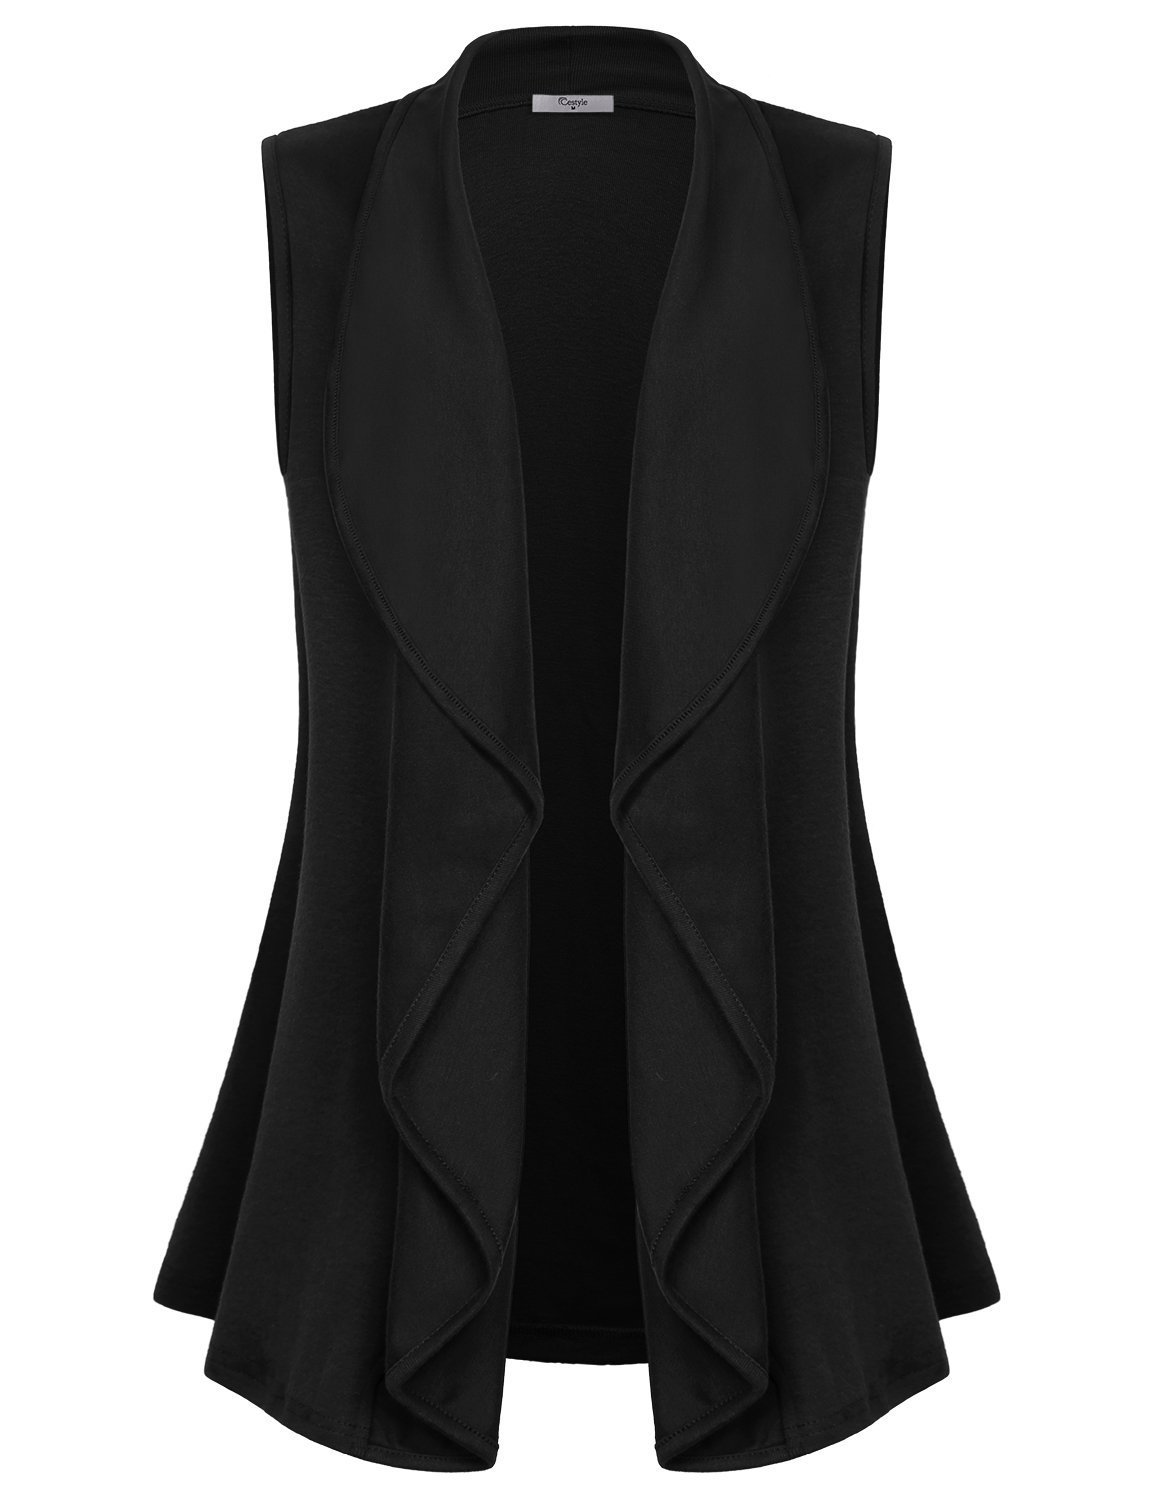 Cestyle Black Vest Women Ladies Sleeveless Cardigan Sweaters Fold Over Collar Dressy Coverup Cardigans for Work Black X-Large